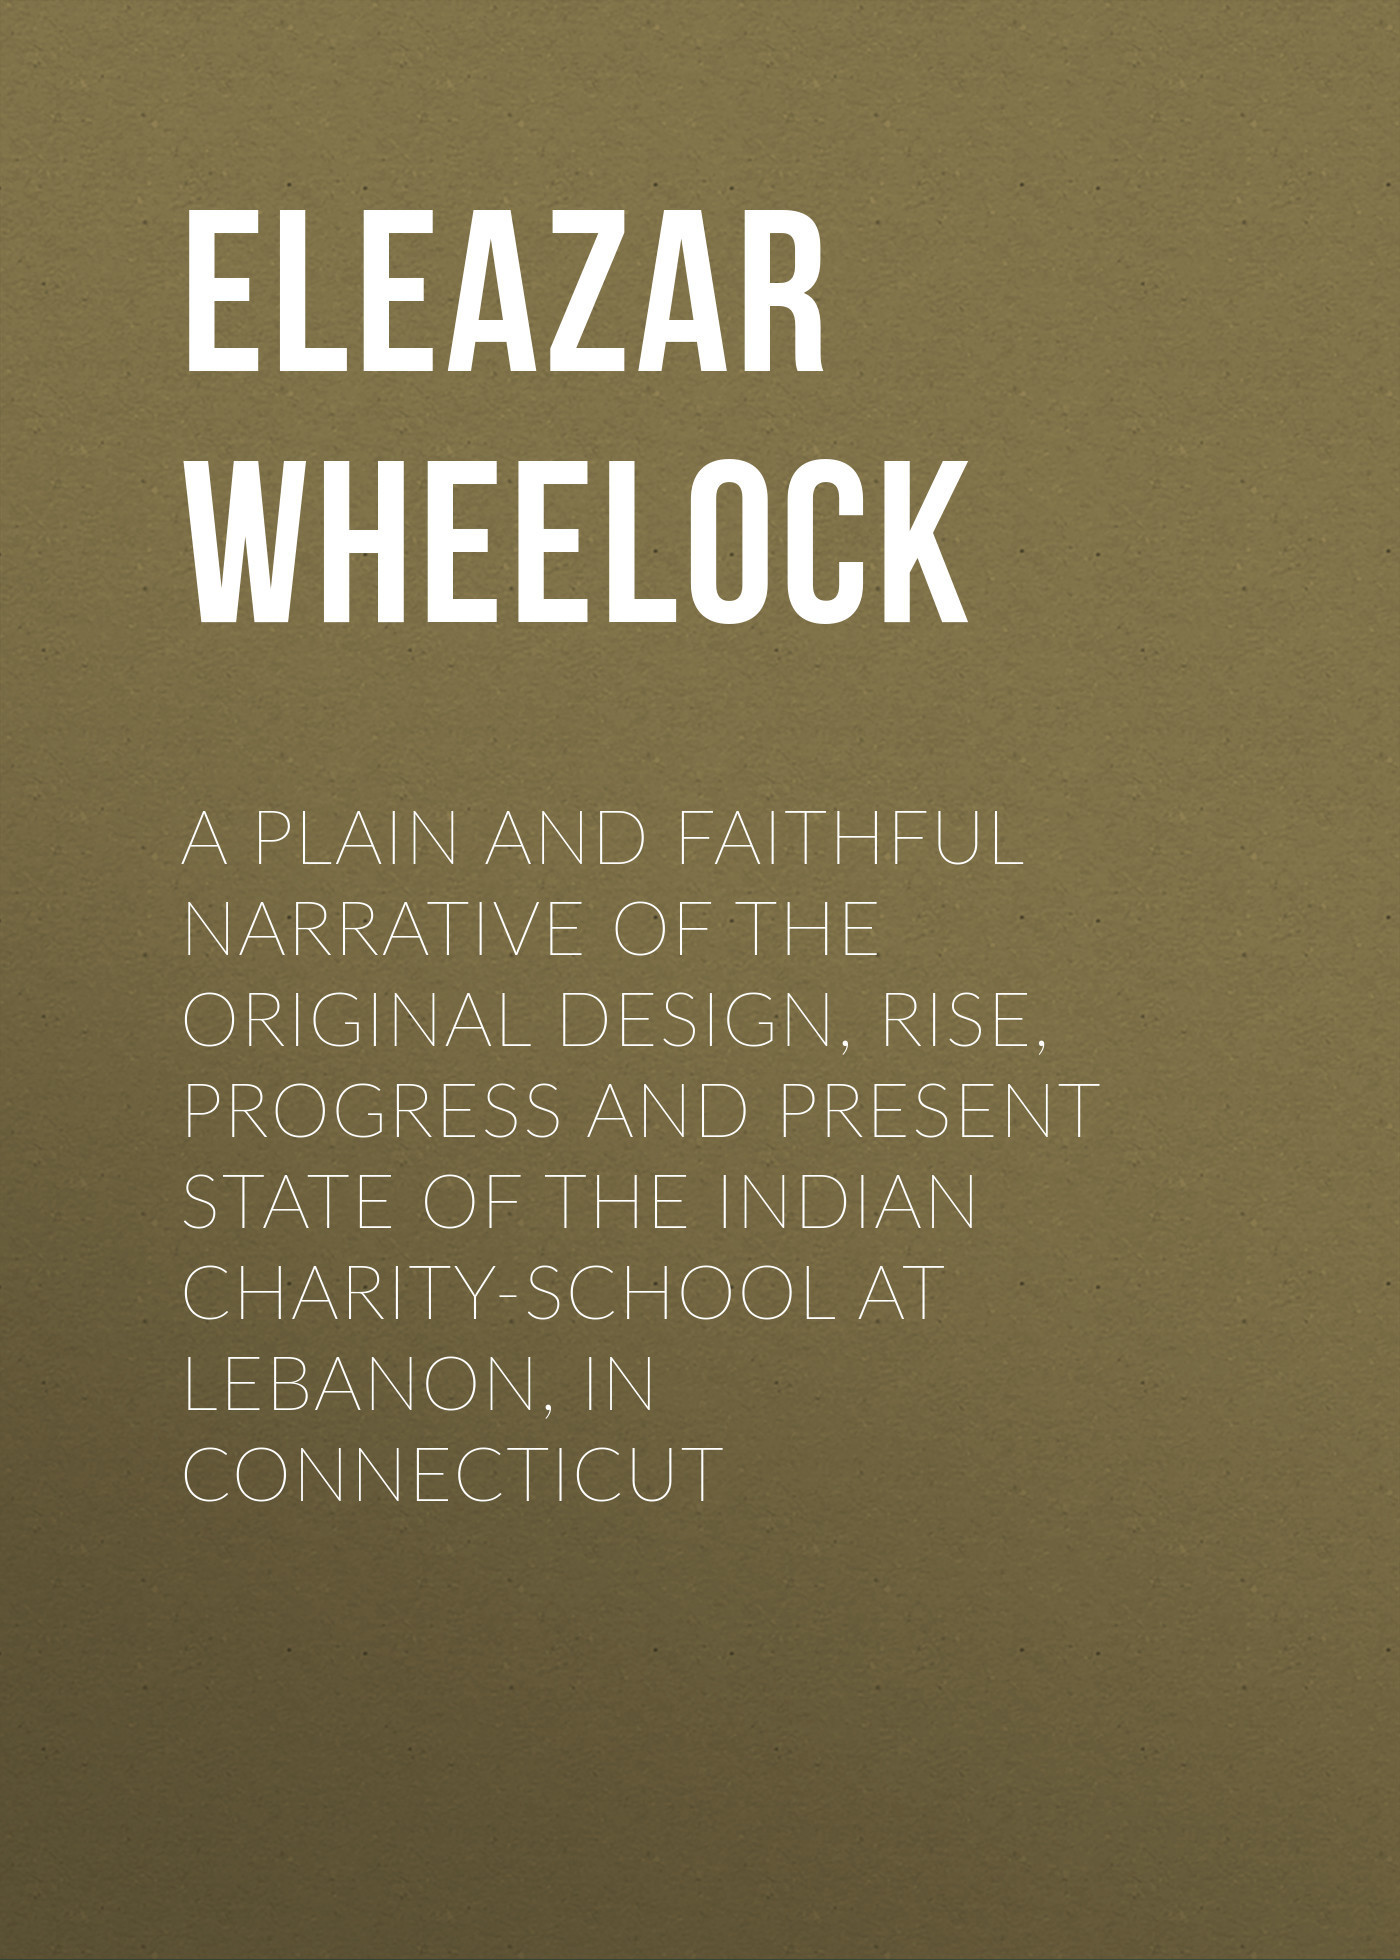 Eleazar Wheelock A plain and faithful narrative of the original design, rise, progress and present state of the Indian charity-school at Lebanon, in Connecticut everyday jihad – the rise of militant islam among palestinians in lebanon oisc